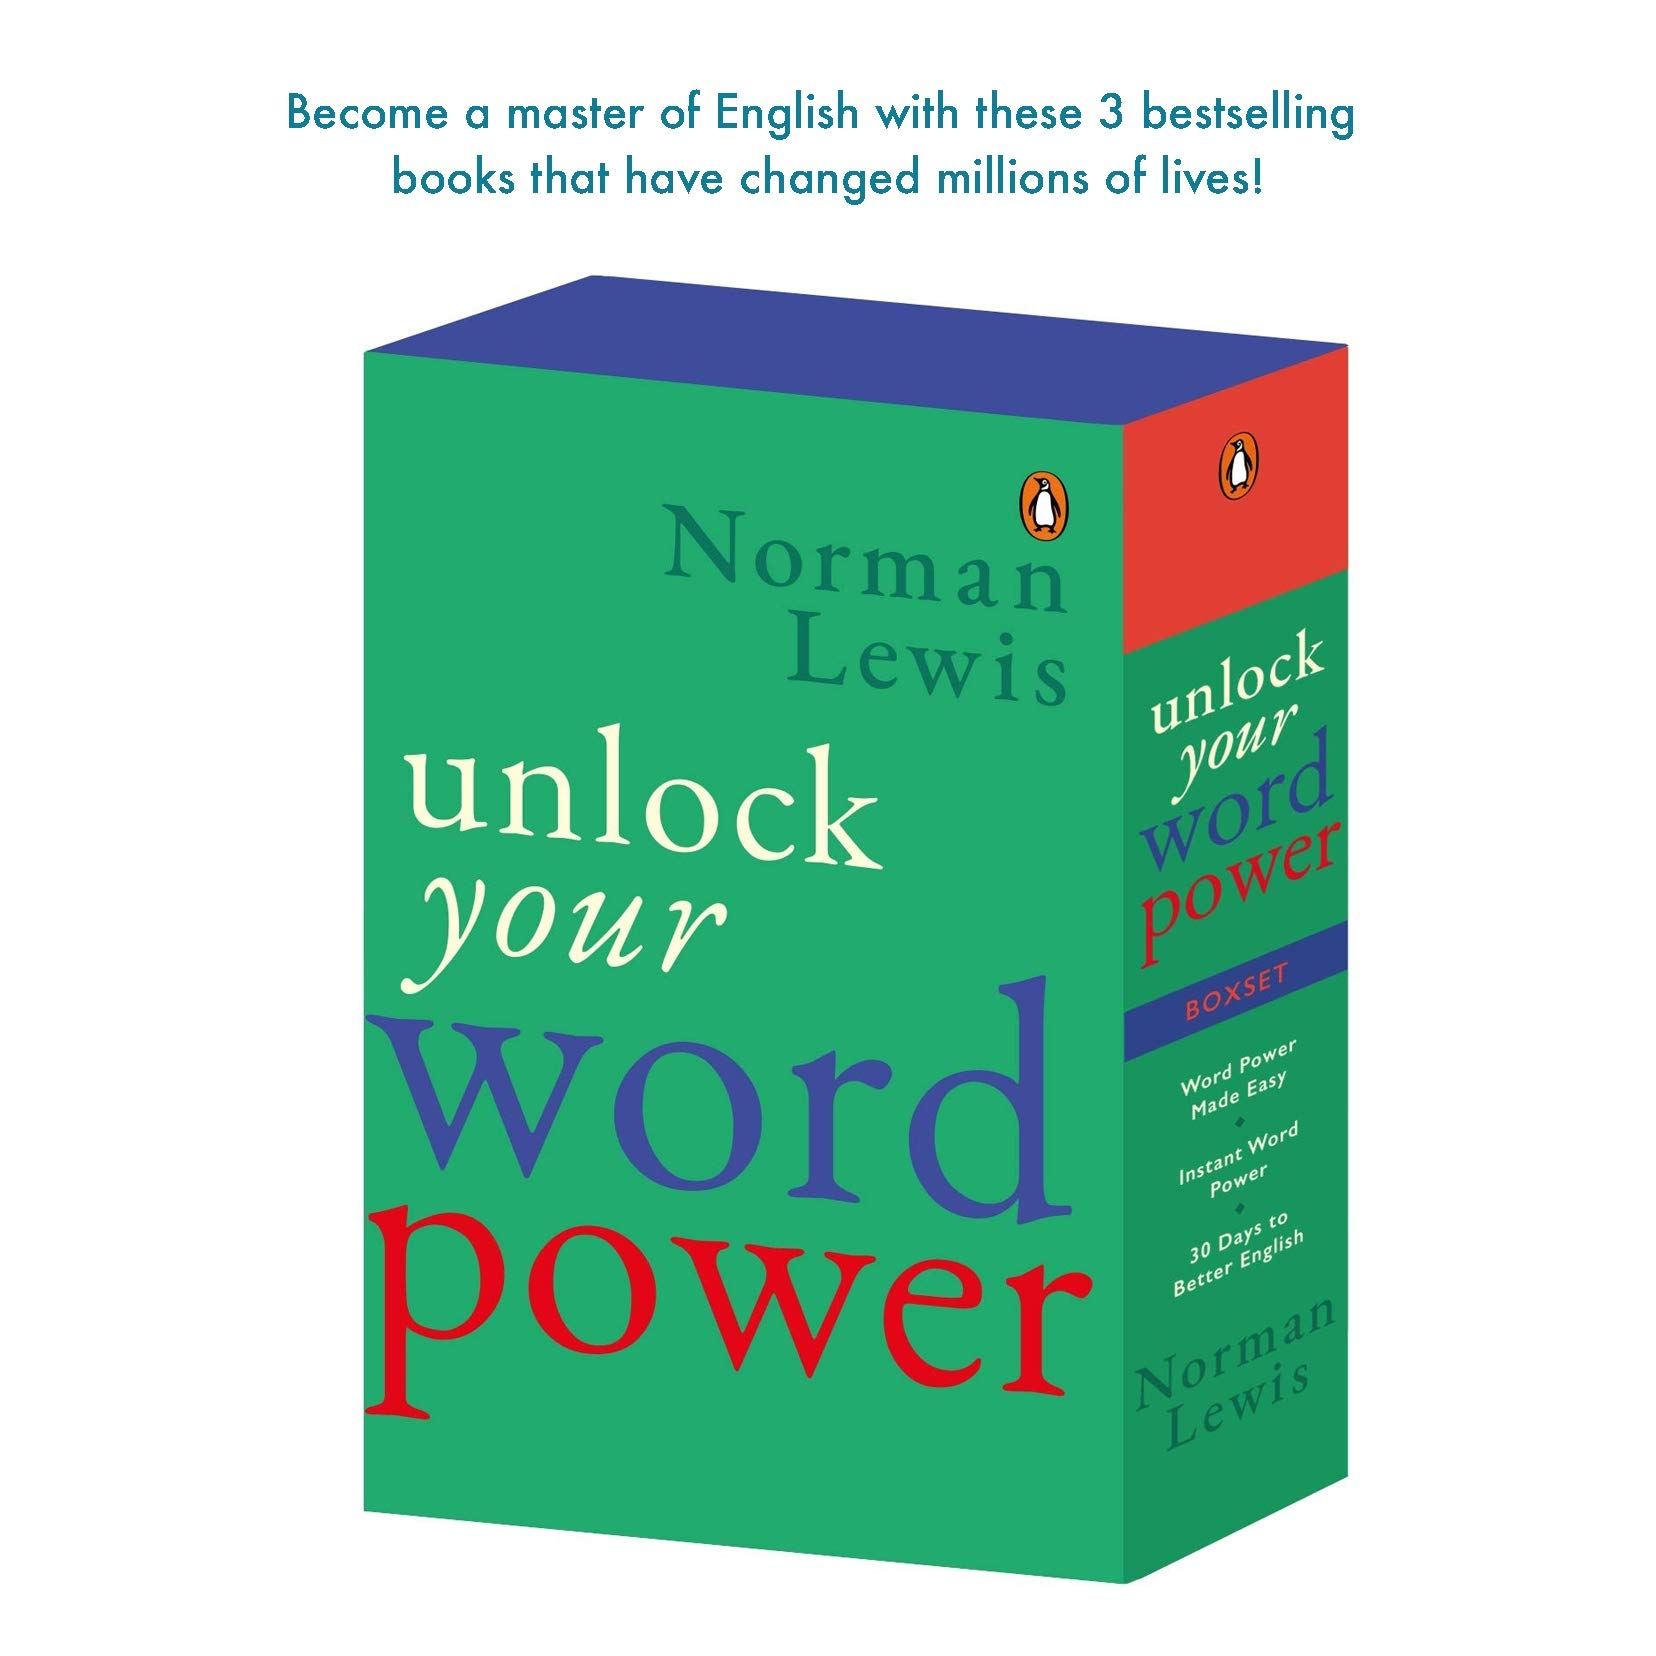 Unlock Your Word Power: Have English at Your Fingertips: A Combo Set of 3 Bestselling Books (Word Power Made Easy + Instant Word Power + 30 Days to Better English)